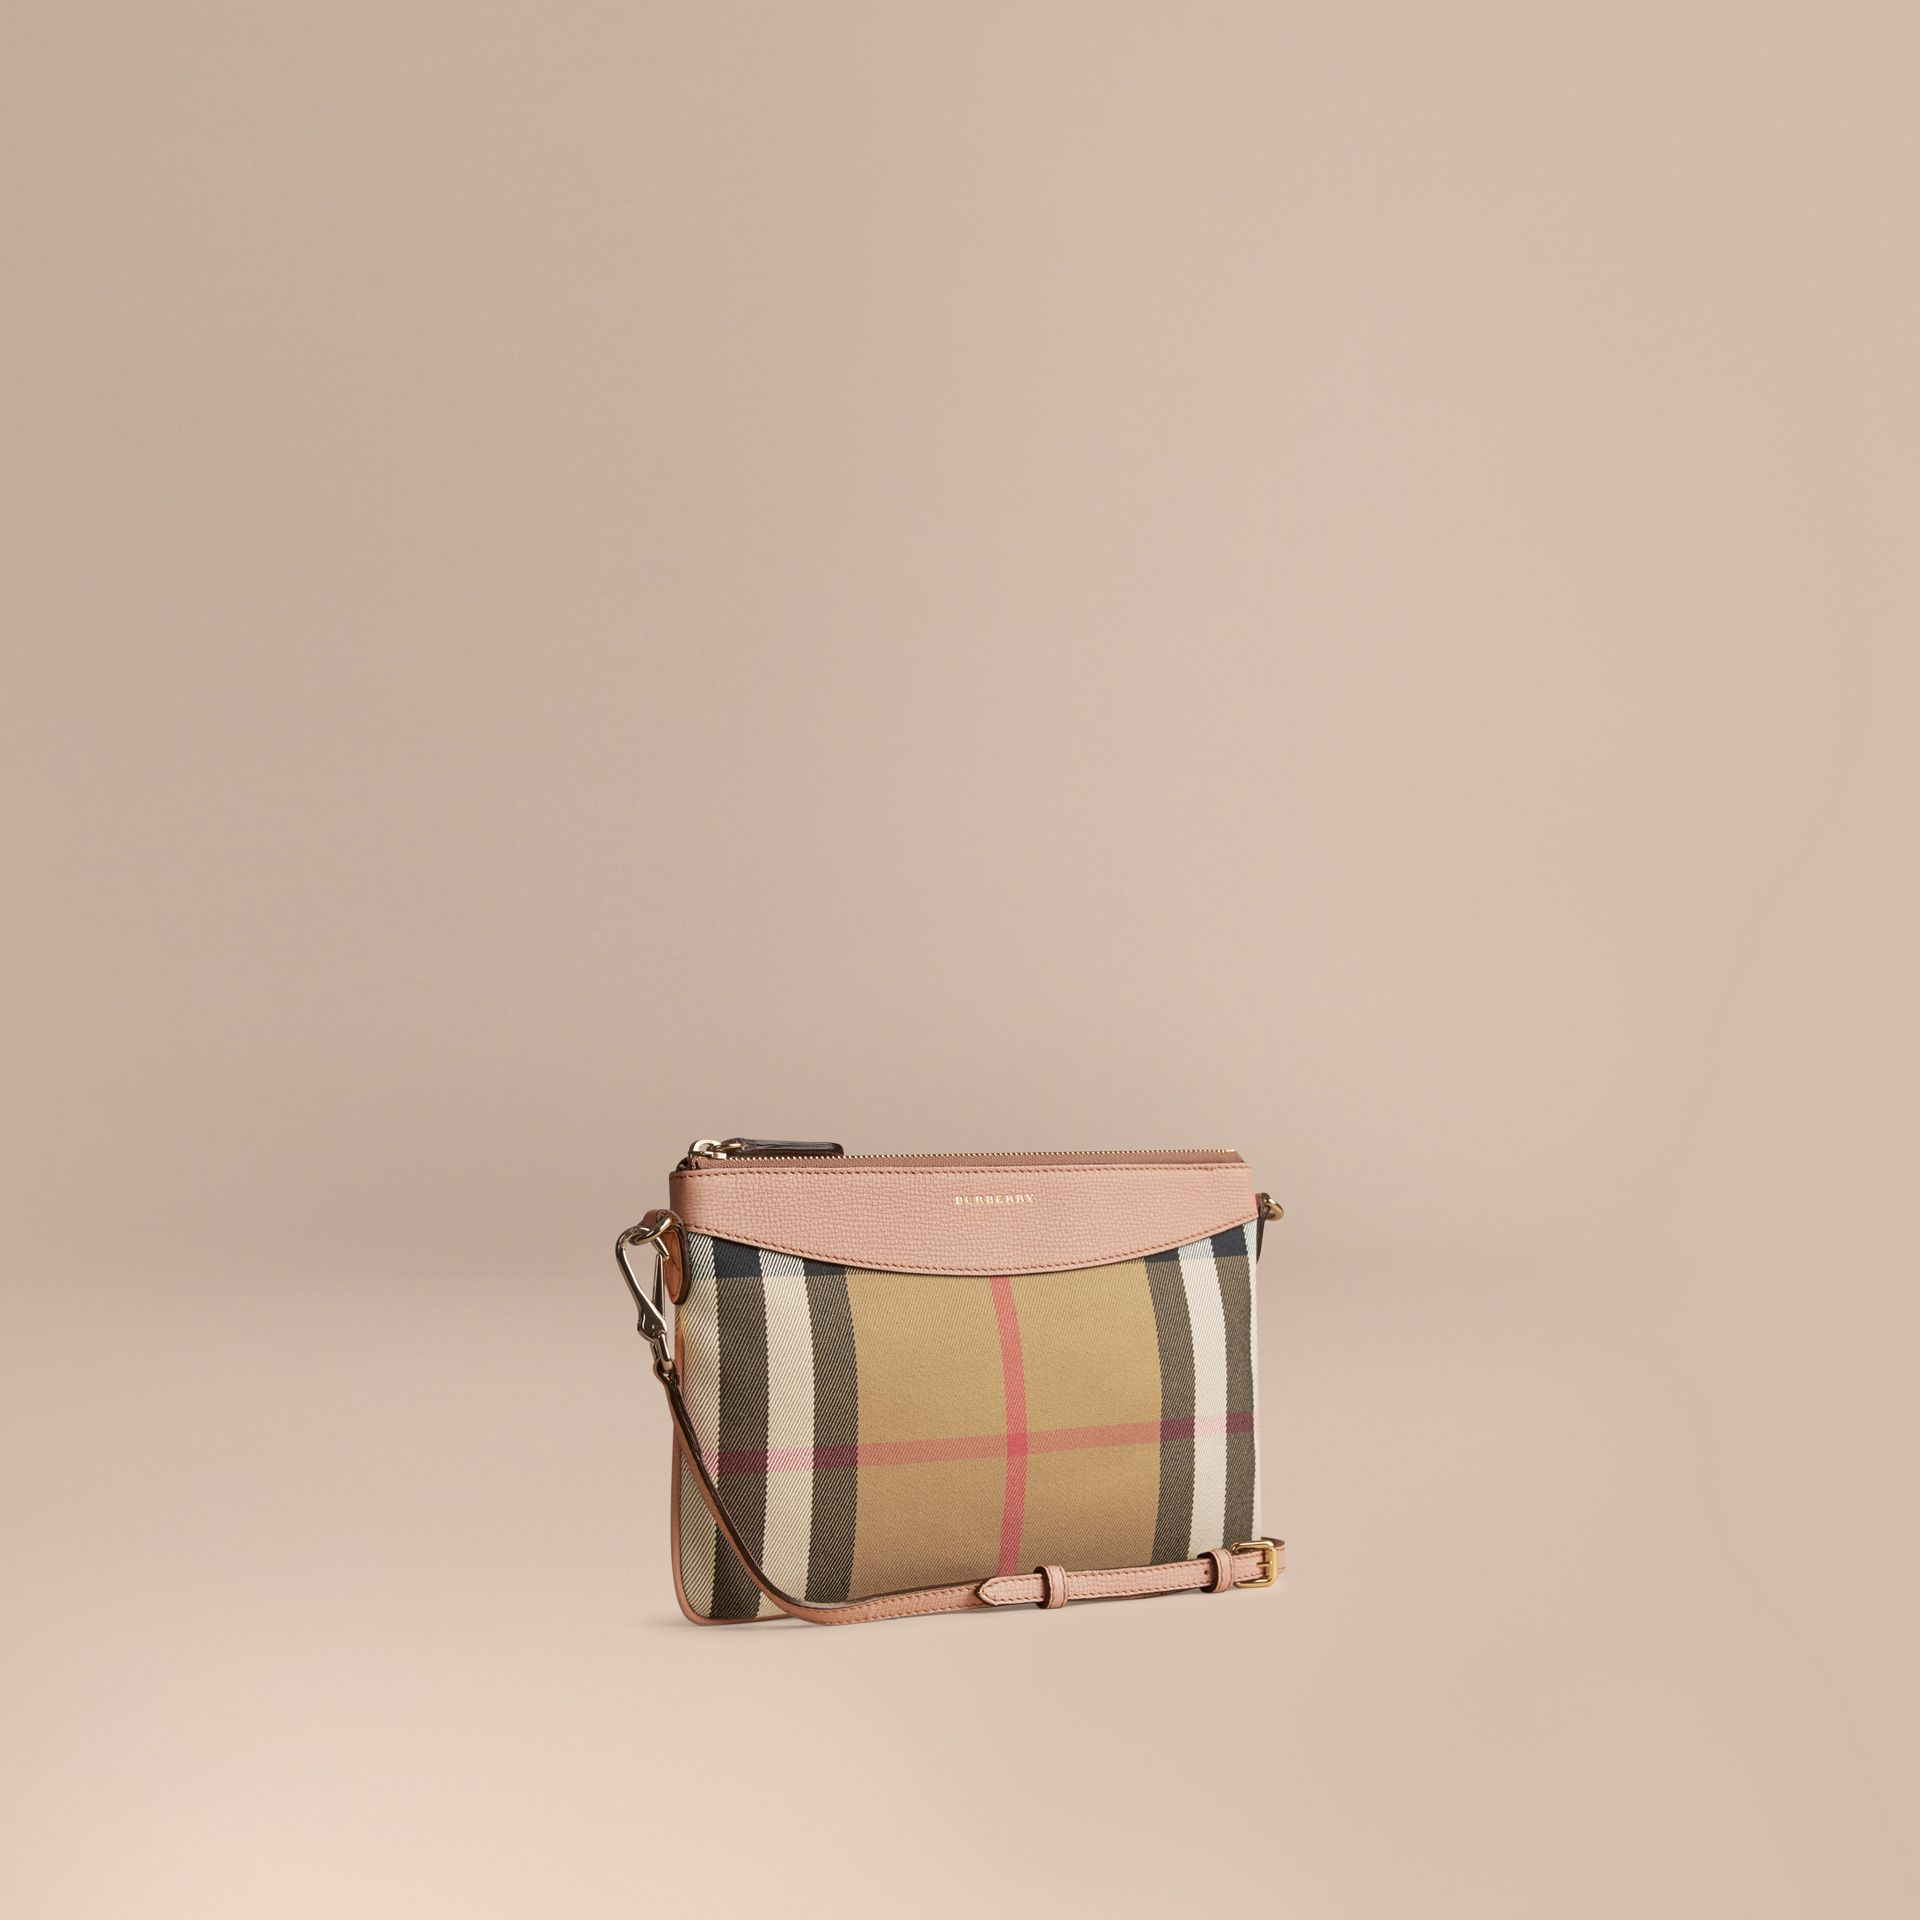 House Check and Leather Clutch Bag in Pale Orchid - Women | Burberry - gallery image 1